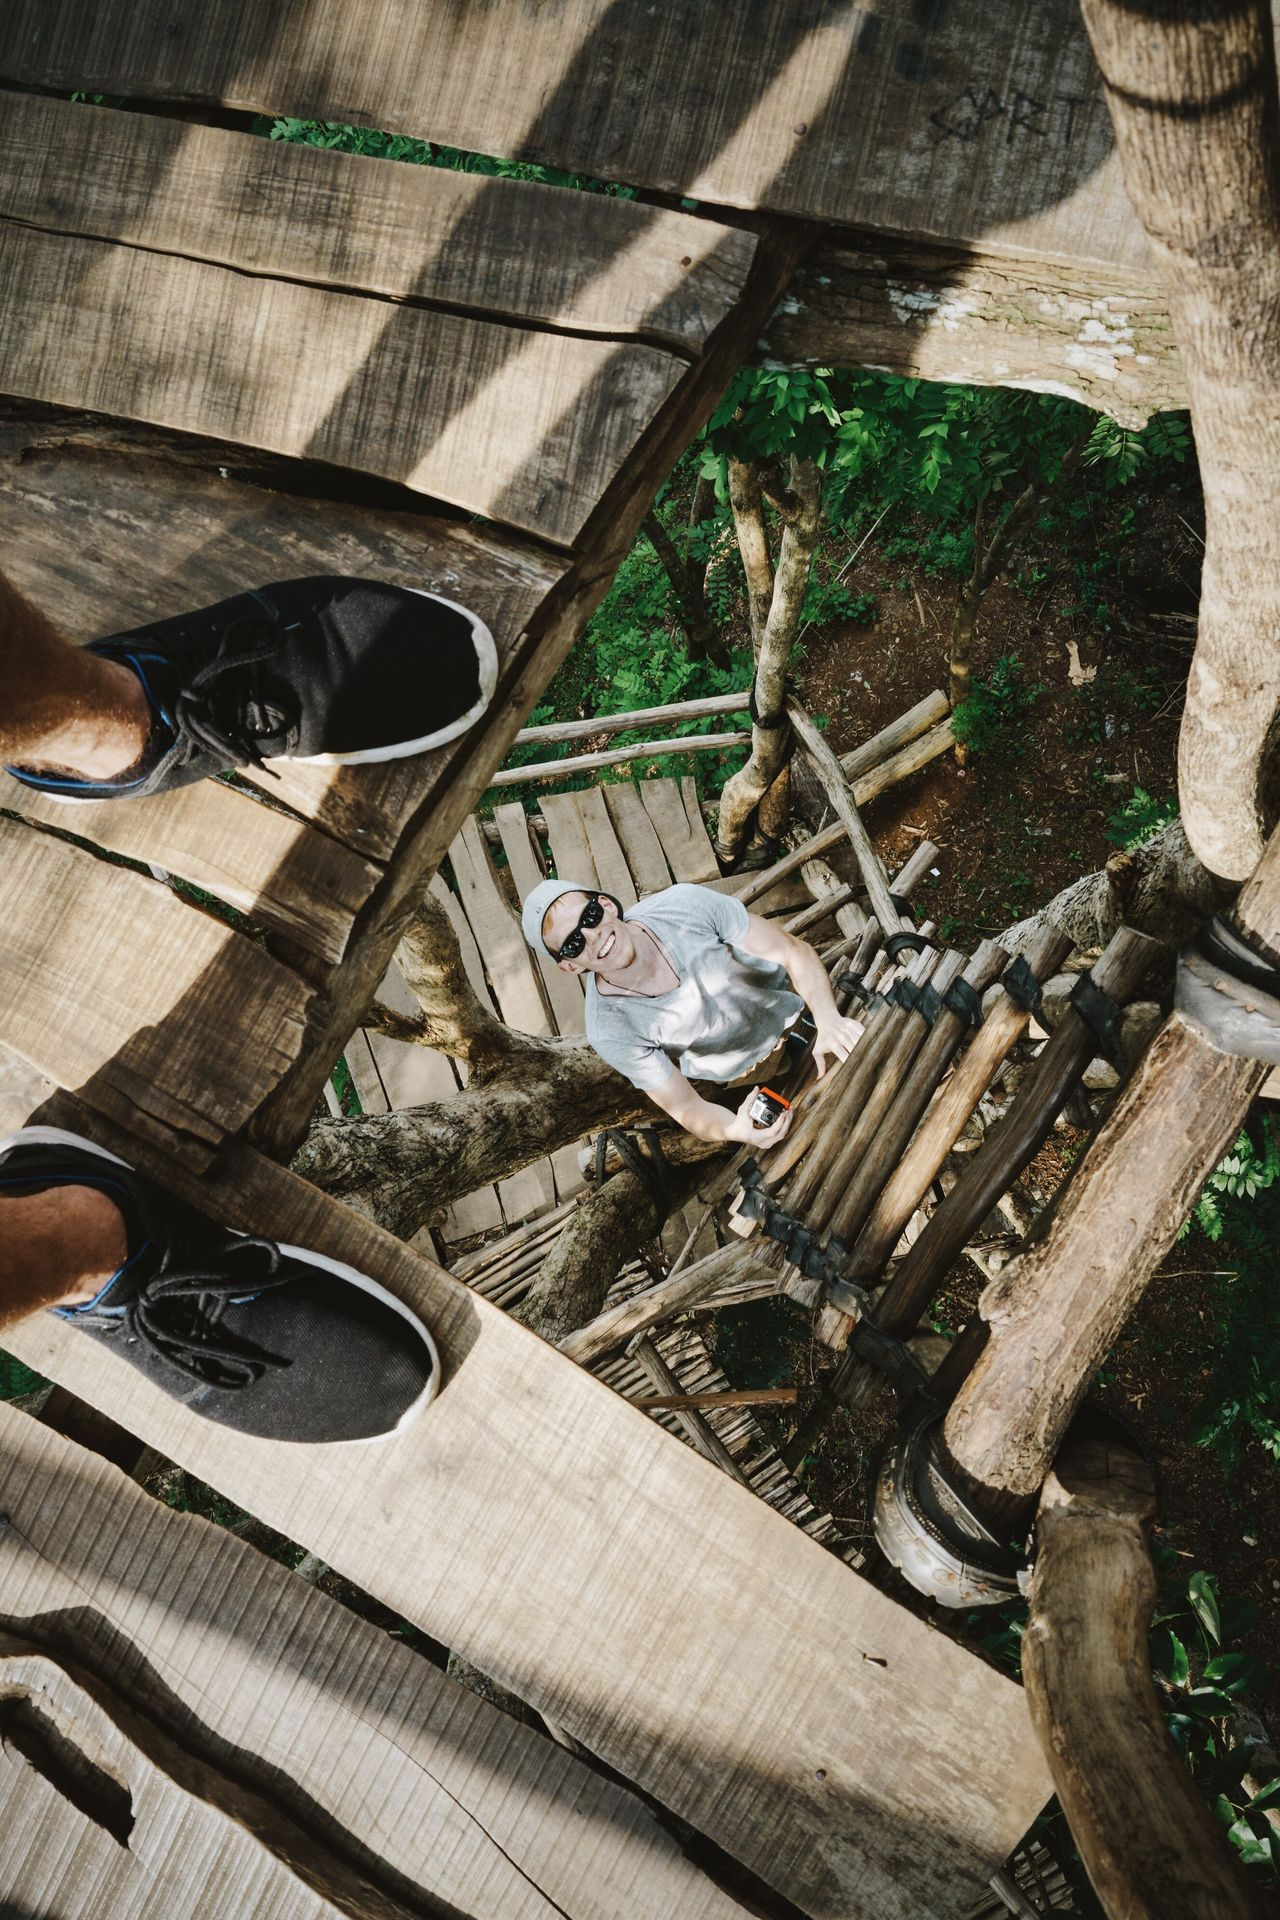 Exploring Jogja's surroundings Pine Forest Climbing Wooden Platform Man Smiling Sunglasses From My Point Of View Black Shoes Grey T-shirt Looking Down Feet Wood Wooden Planks Forest INDONESIA Java Traveling Adventure My Year My View The Architect - 2017 EyeEm Awards Out Of The Box